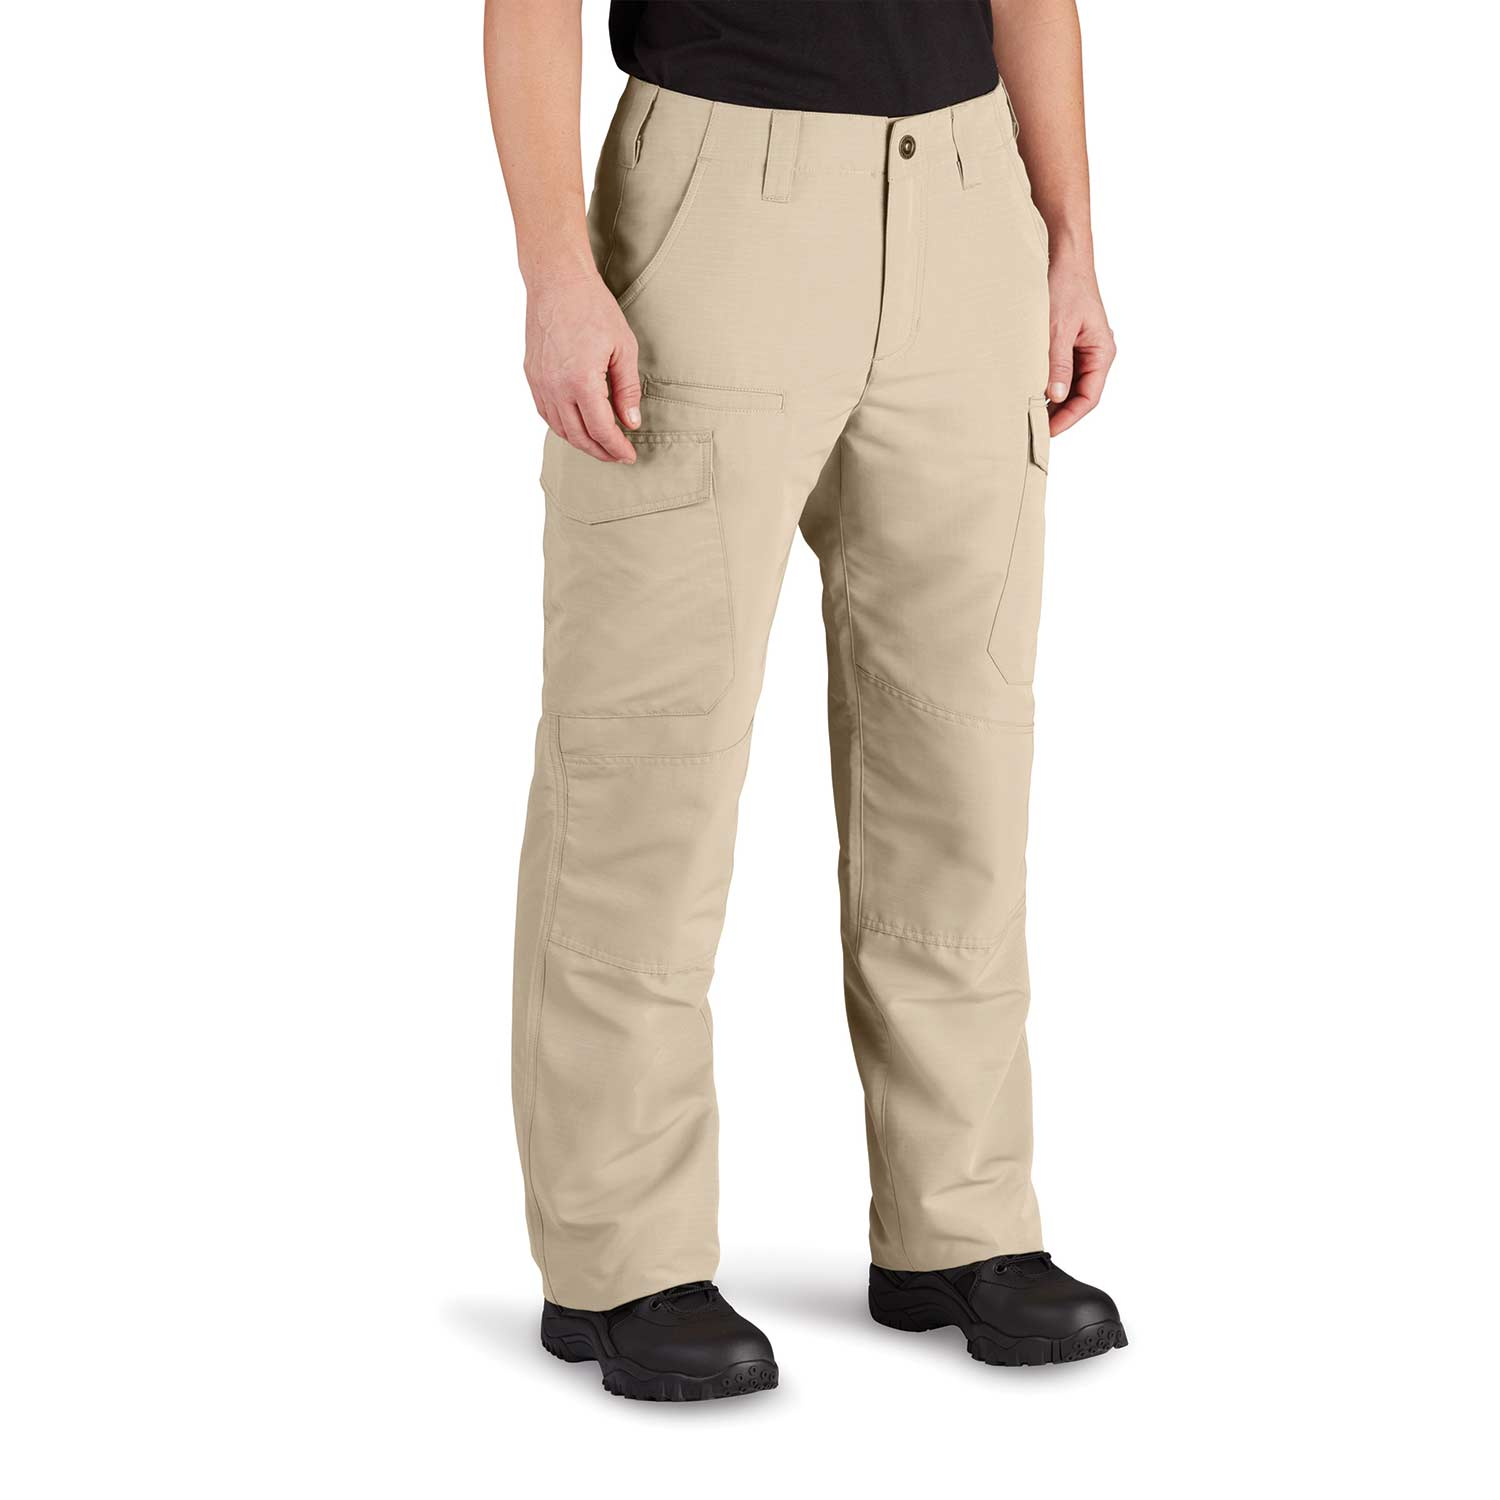 PROPPER Women's EdgeTec Tactical Pant